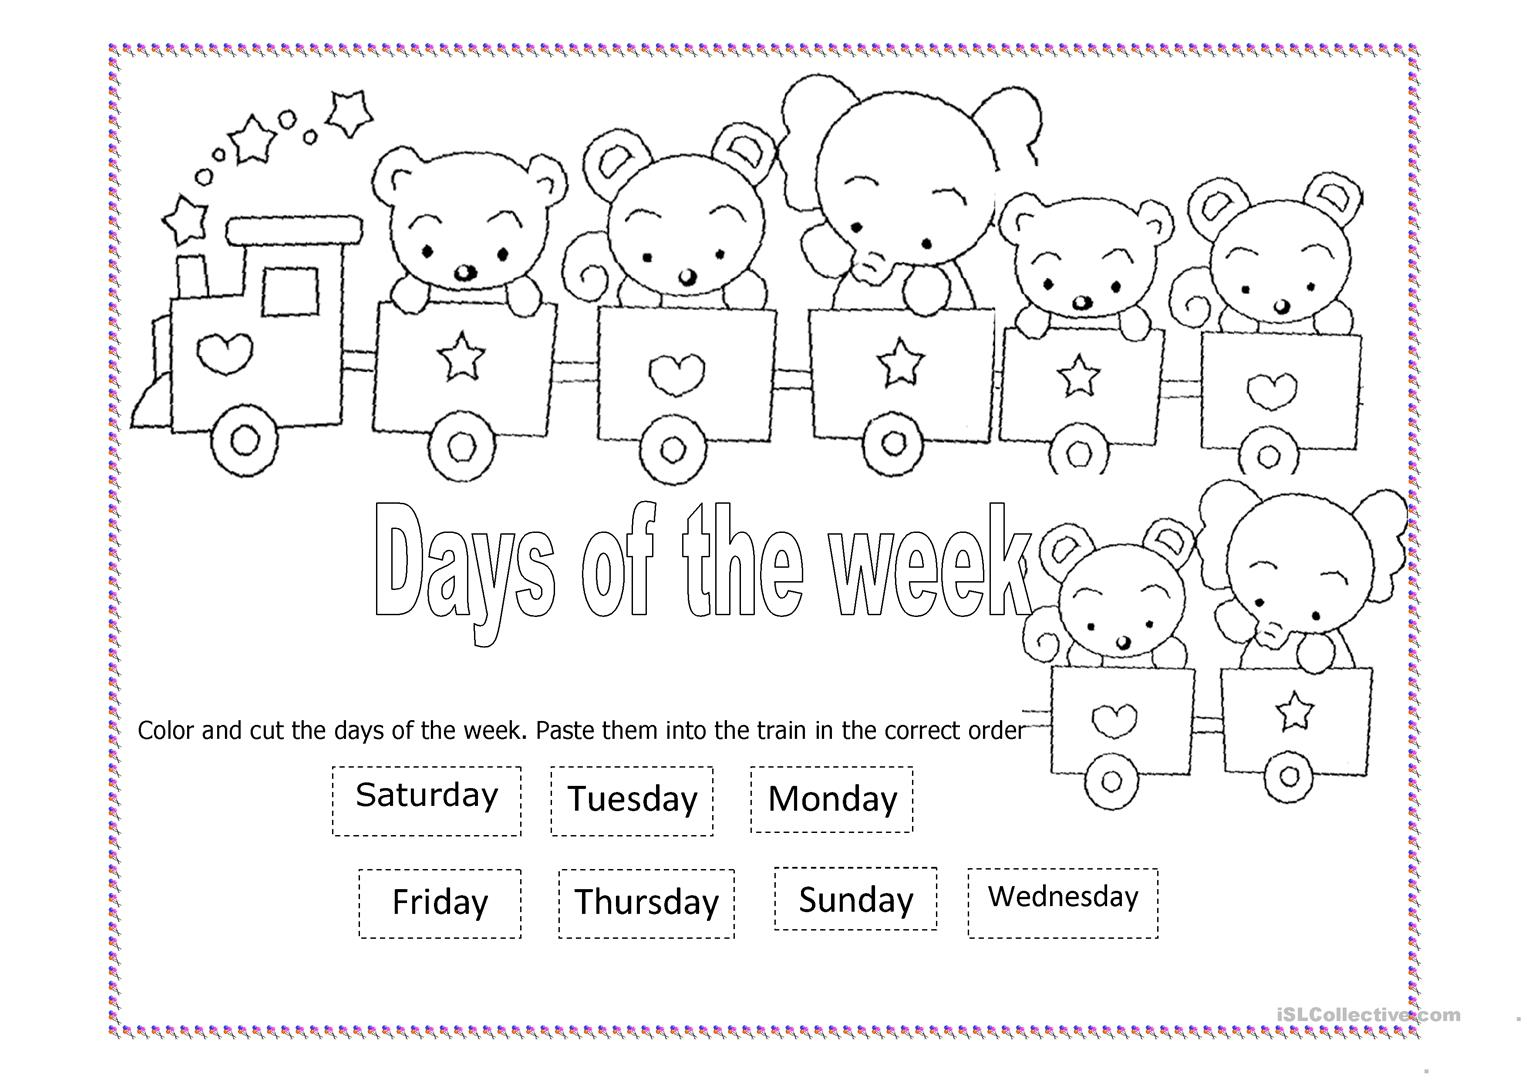 worksheet Days Of The Week Worksheet days of the week train worksheet free esl printable worksheets full screen